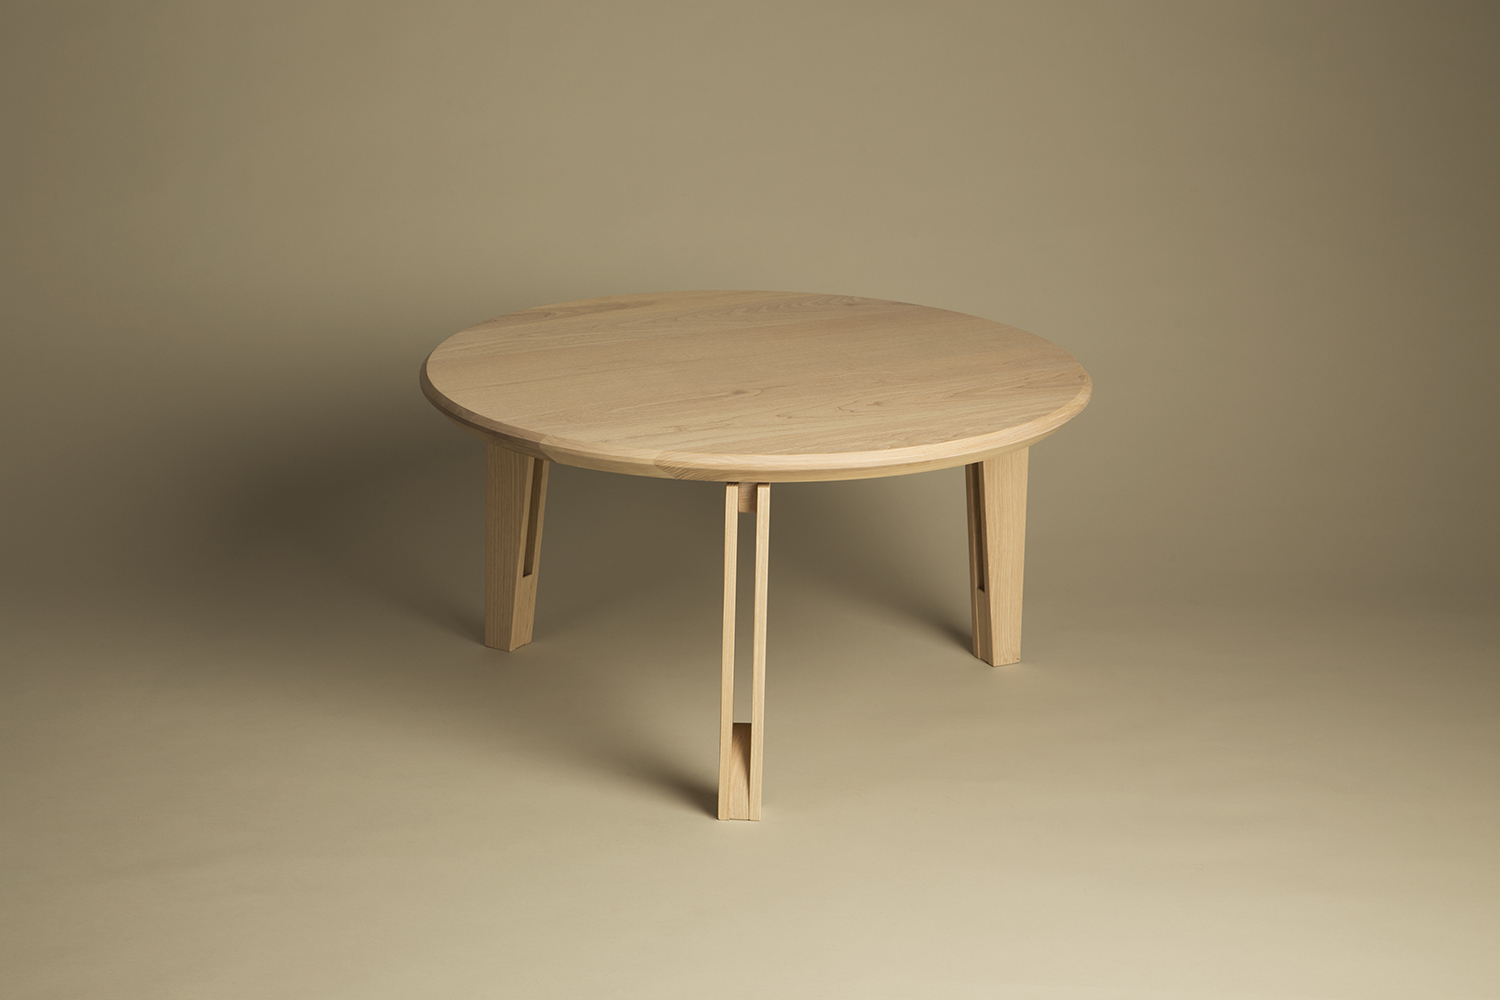 Brace Coffee Table by Alan Flannery Furniture Design L3.jpg